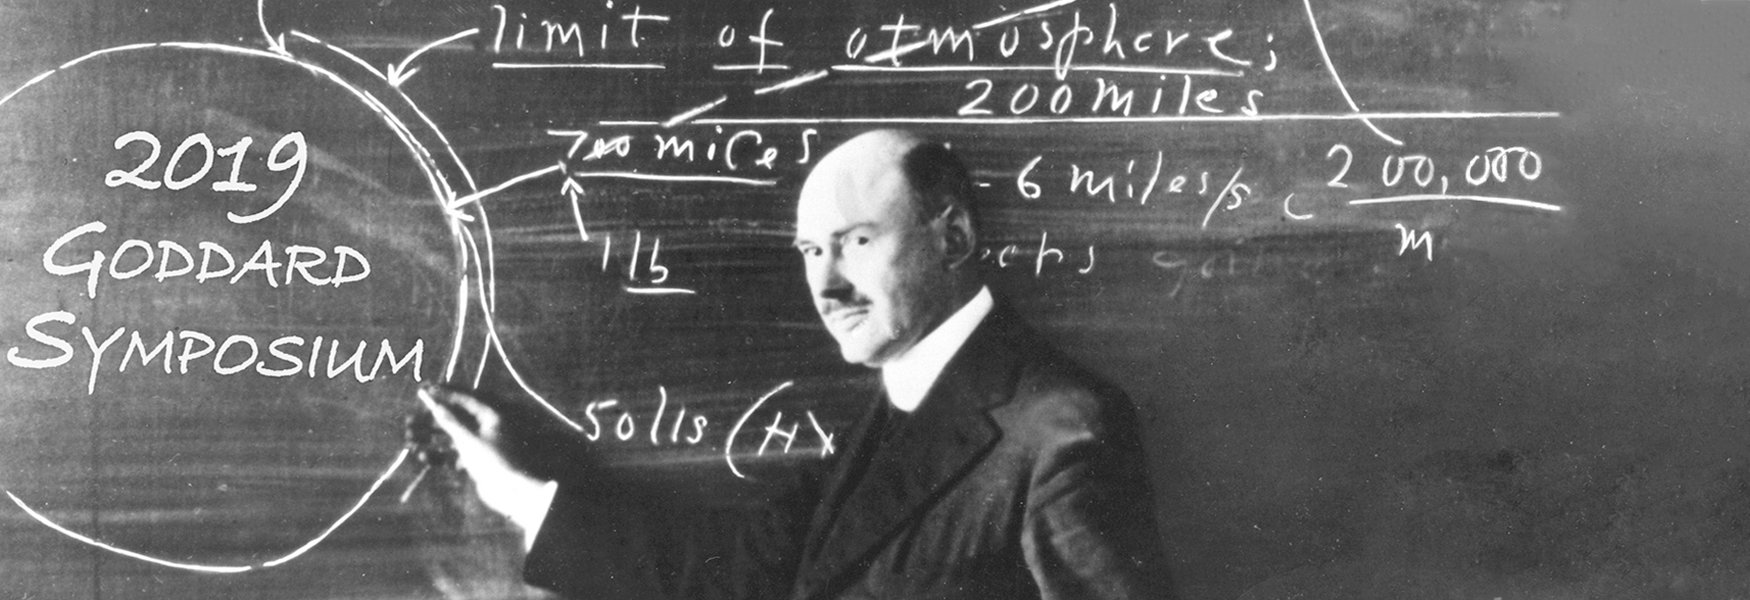 2019 Robert H. Goddard Memorial Symposium – Registration Open!